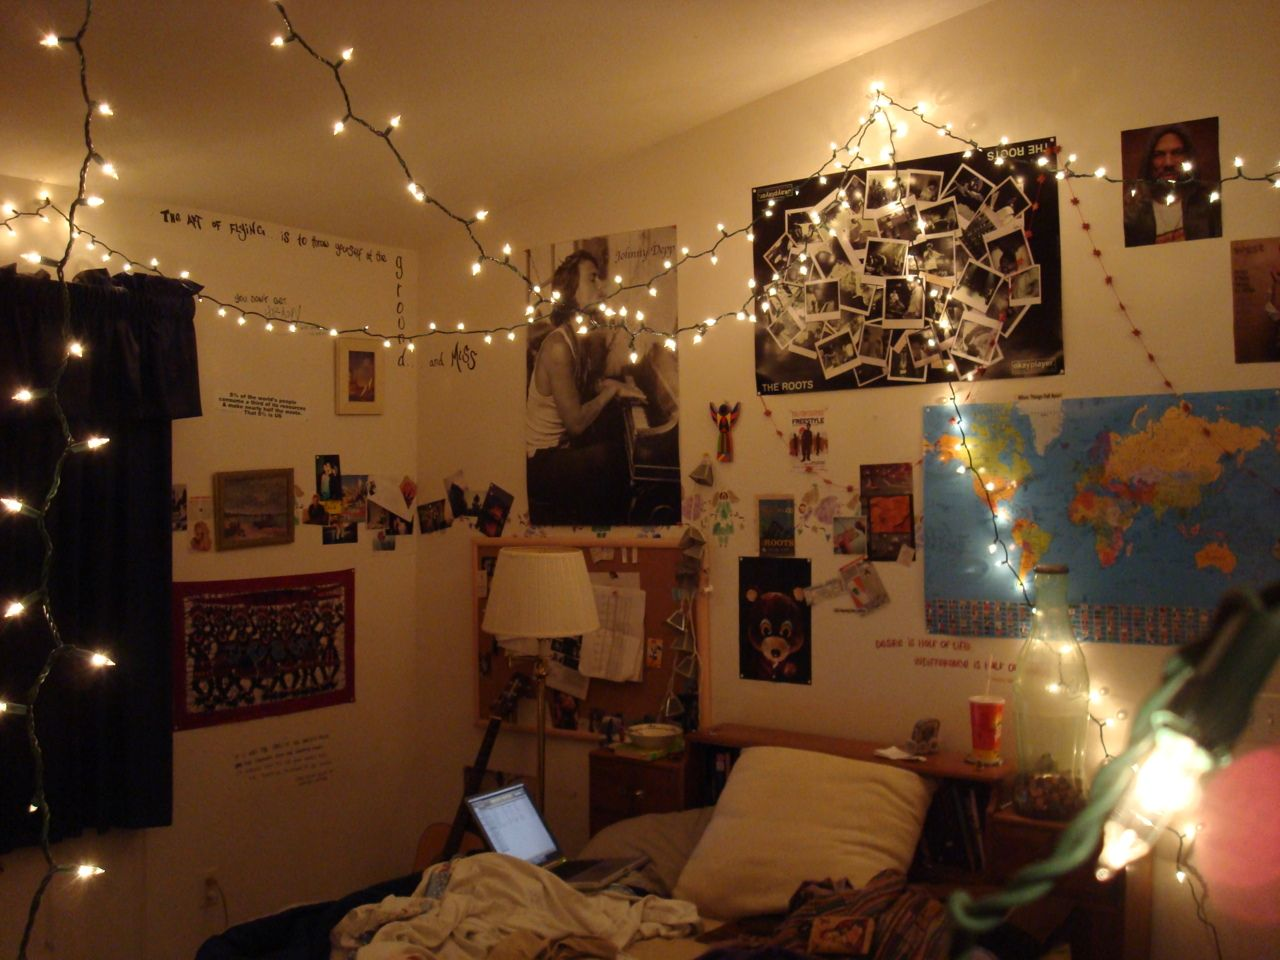 98 best images about tumblr bedrooms on Pinterest | We heart it ...